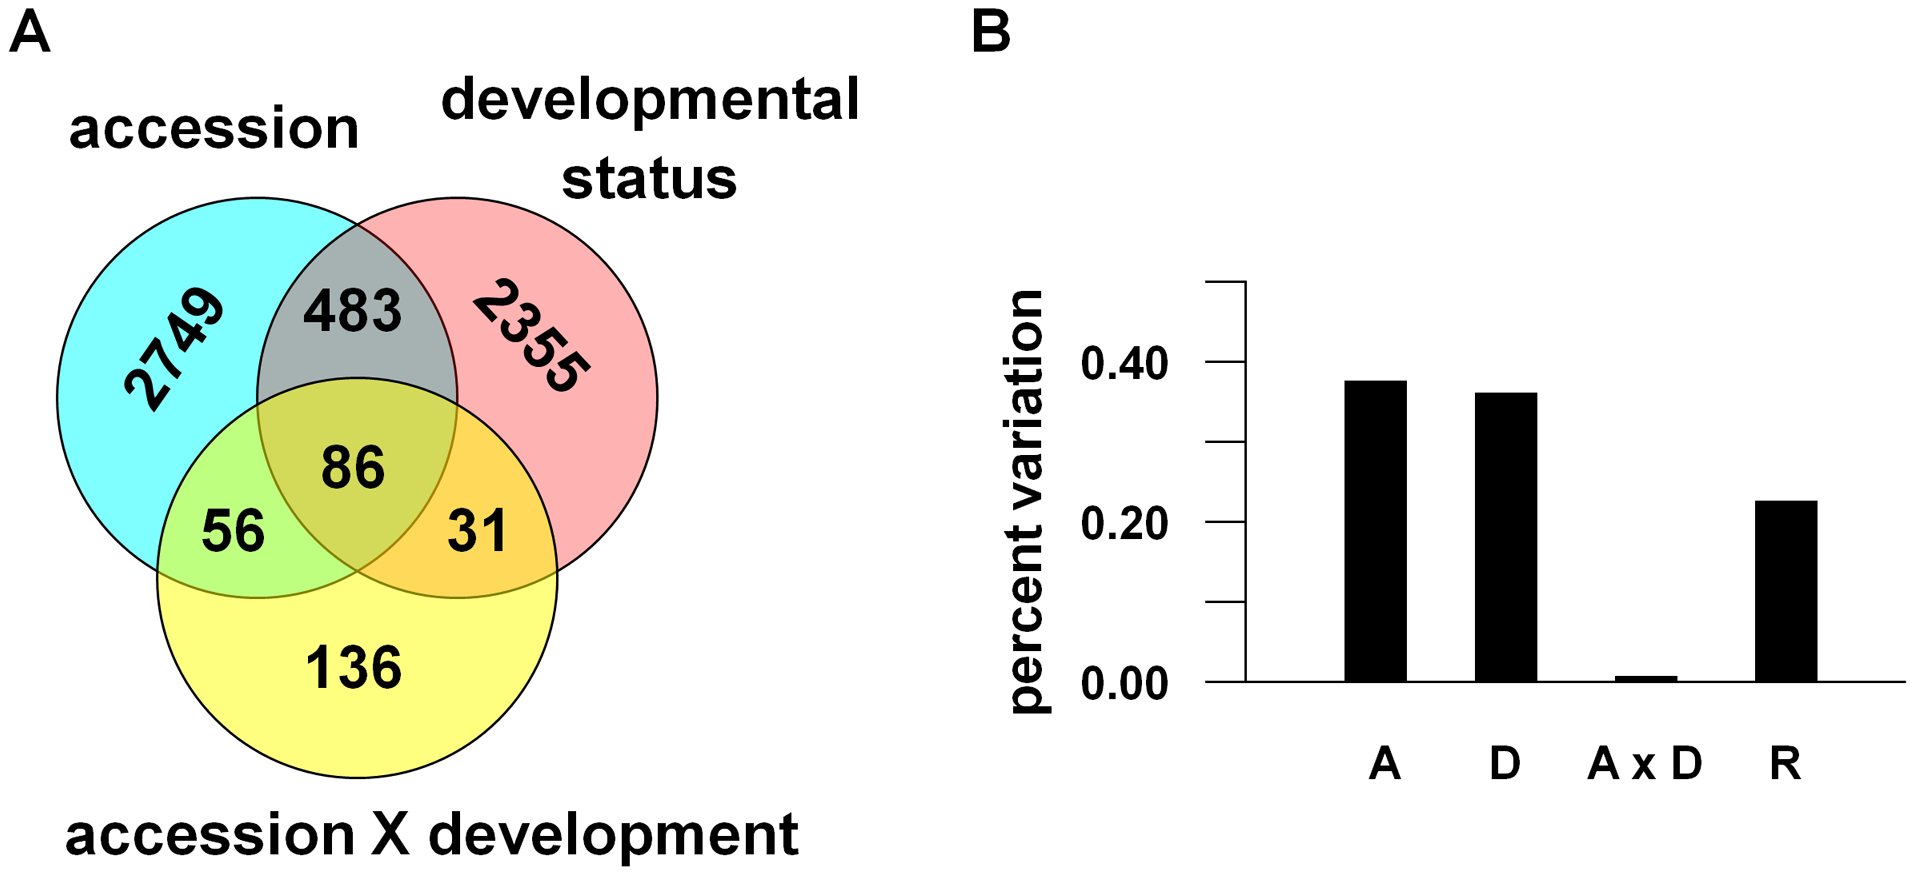 Components of transcriptional variance in <i>A. thaliana</i> in the field.